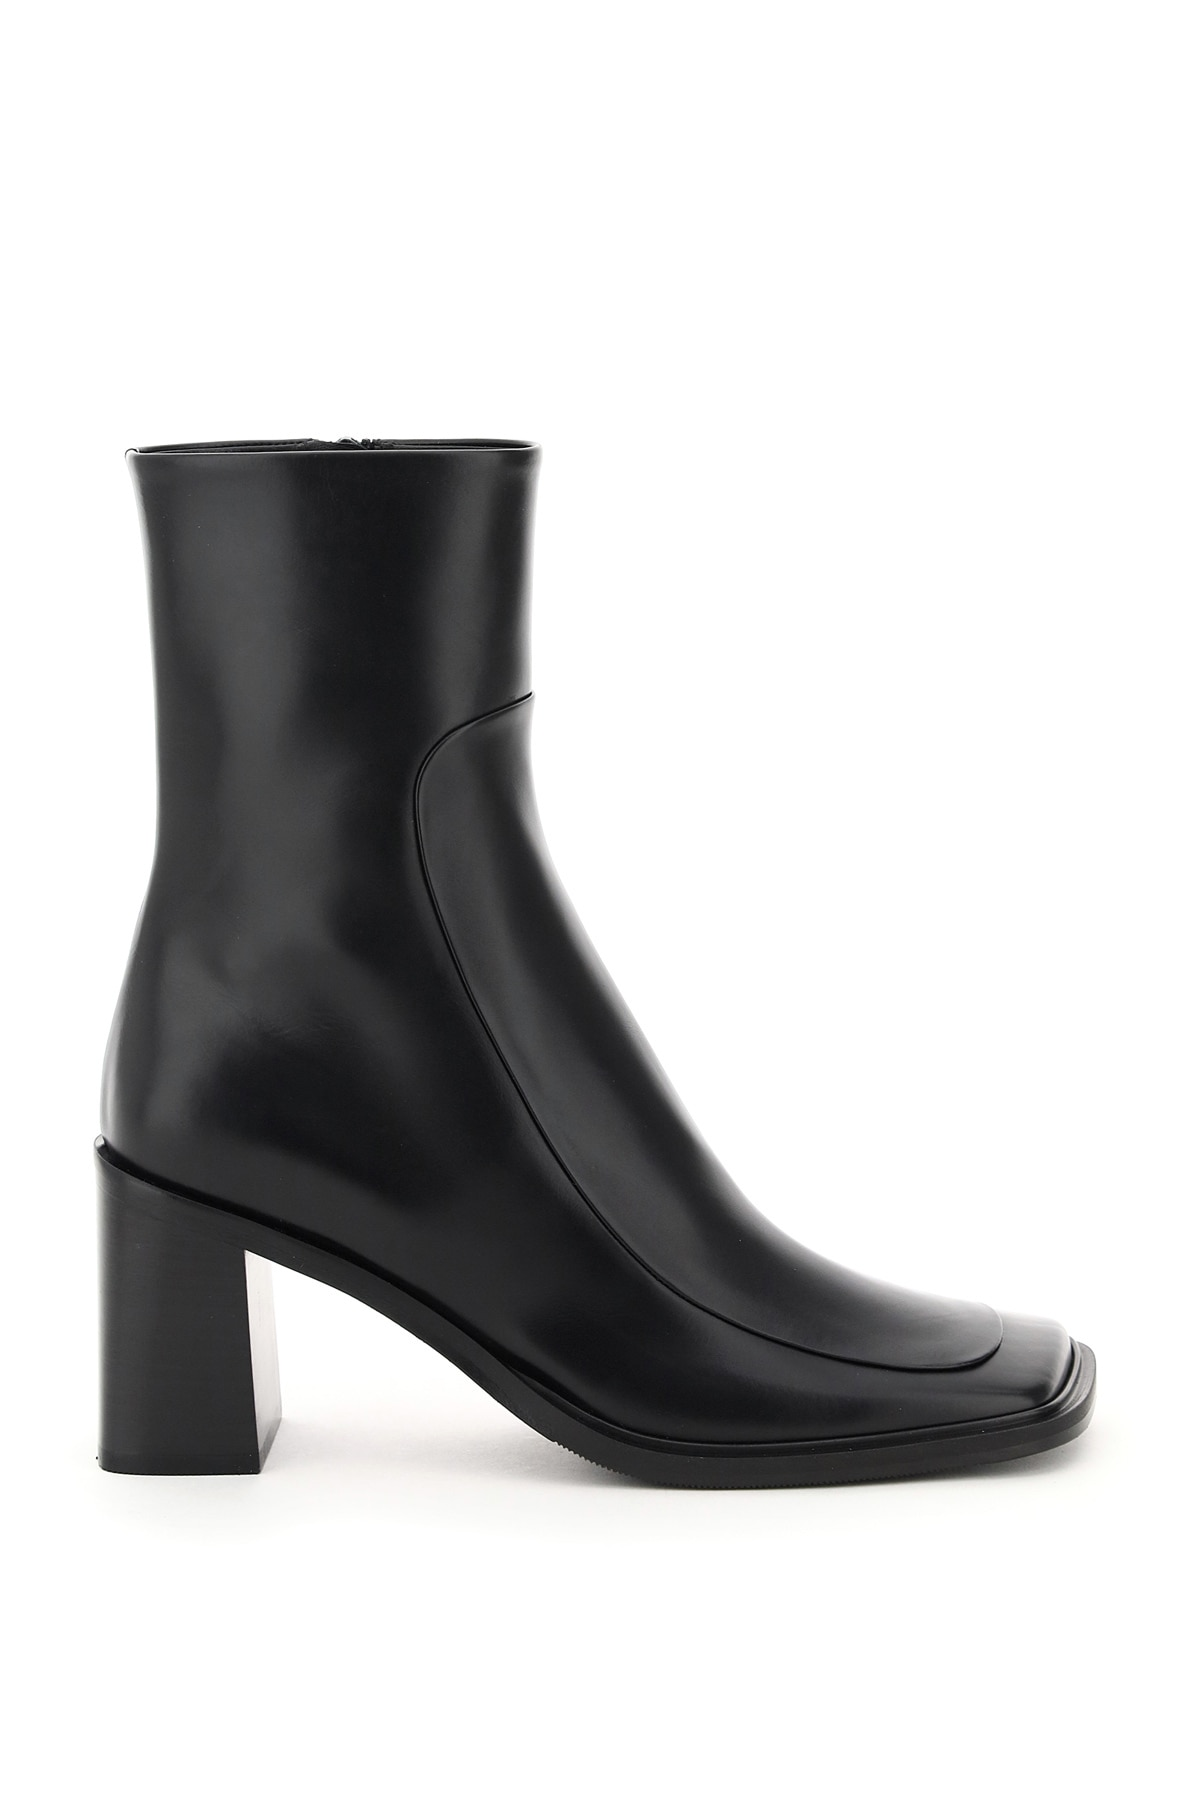 THE ROW PATCH LEATHER ANKLE BOOTS 38 Black Leather